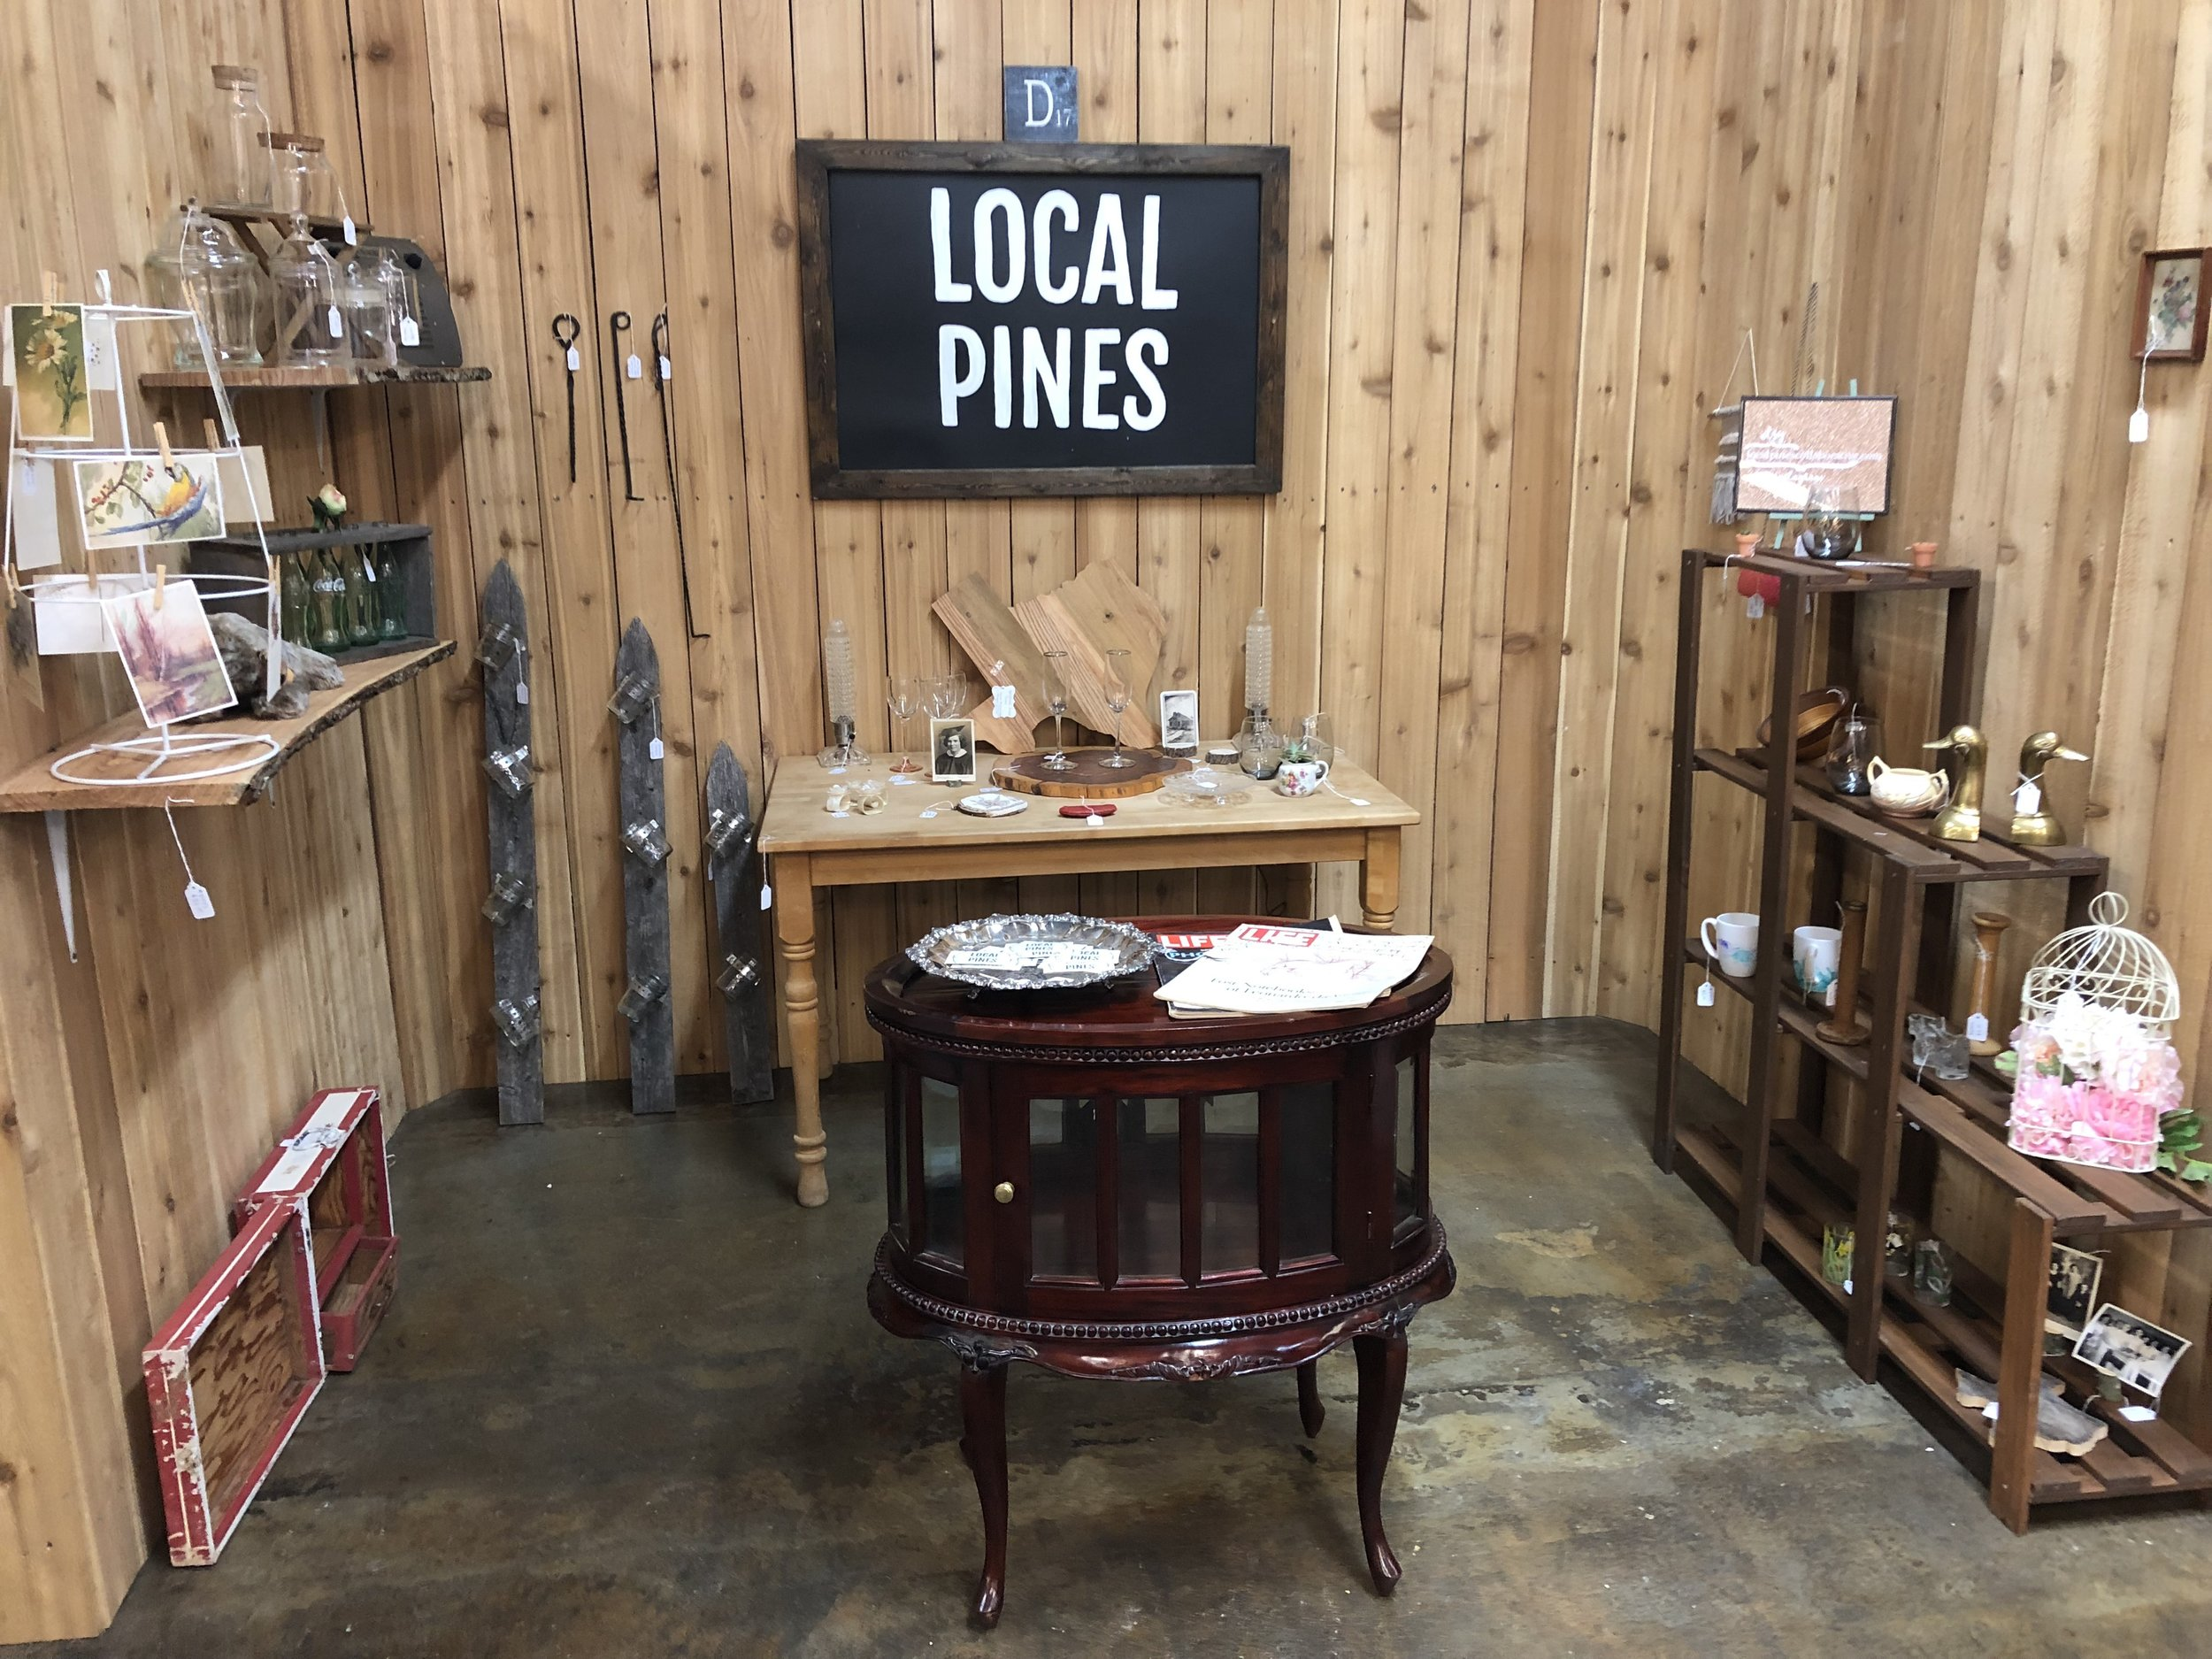 ramble and rove - local pines collaborative - painted tree - vintage market - woodworking space - local pines